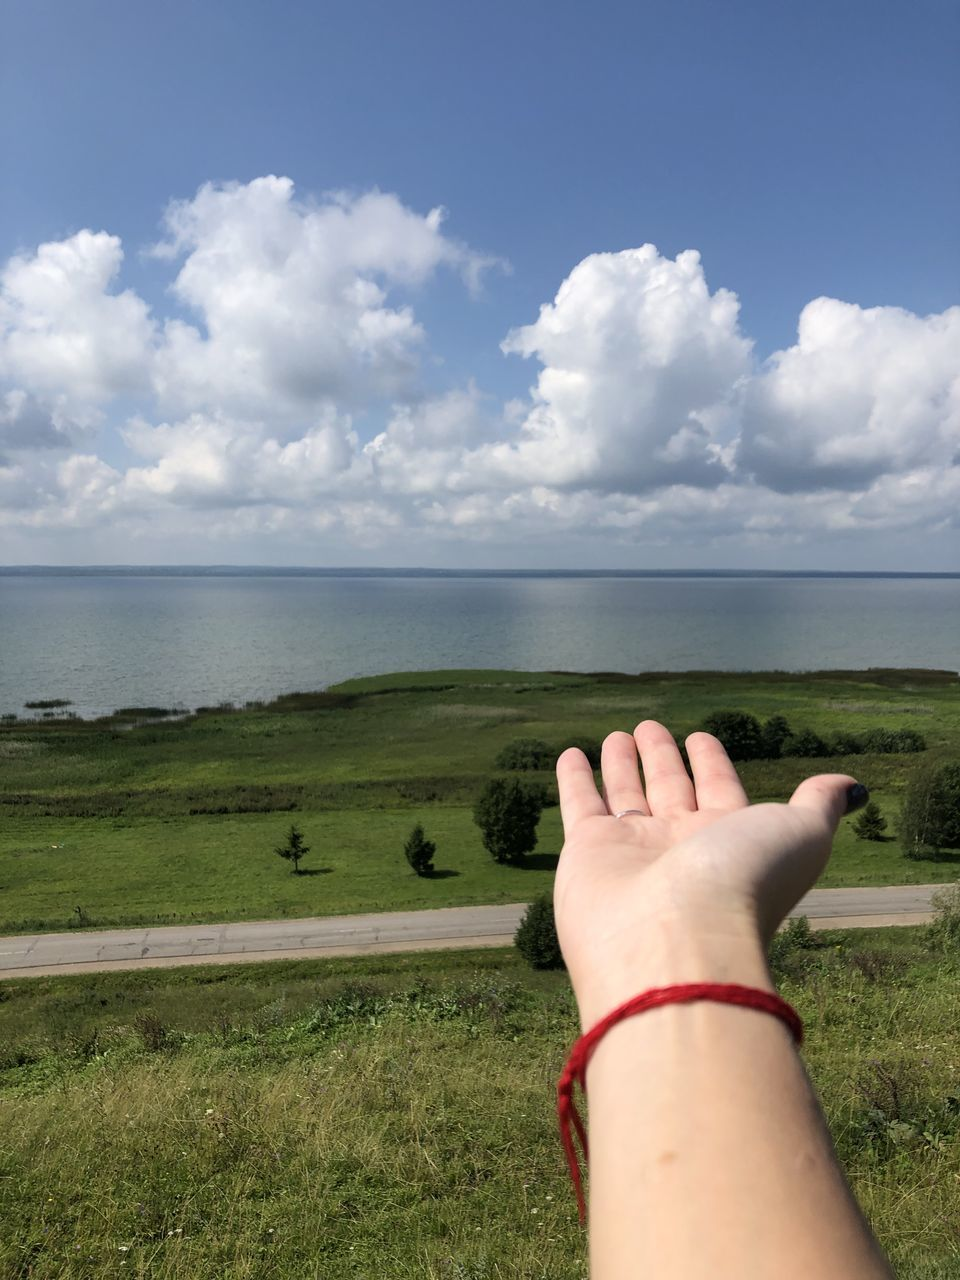 sky, cloud - sky, nature, water, land, plant, grass, human body part, horizon, day, sea, scenics - nature, real people, one person, beauty in nature, personal perspective, horizon over water, human hand, body part, outdoors, hand